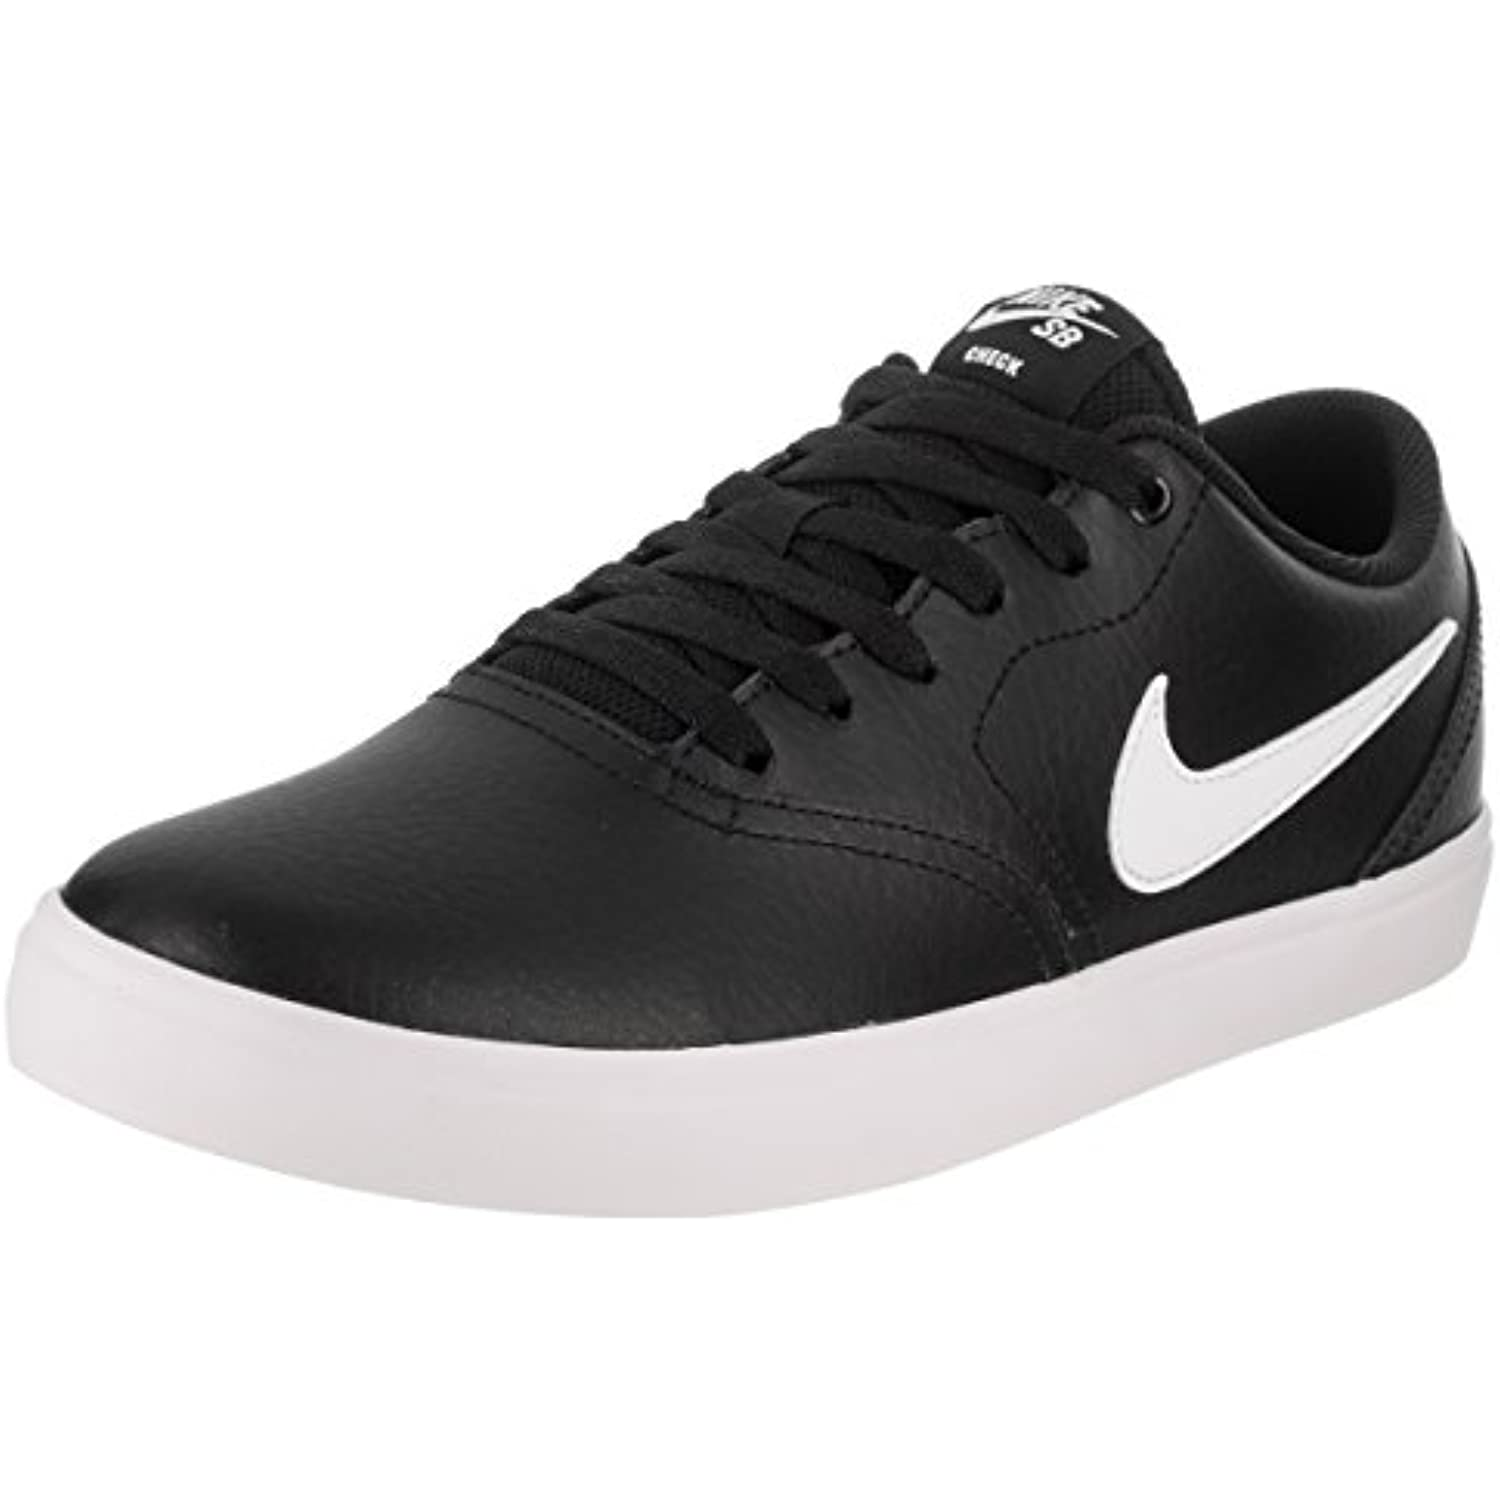 NIKE SB Check Solar, Sneakers Basses Homme Homme Basses - B072BCK9Z7 - a4d4dc